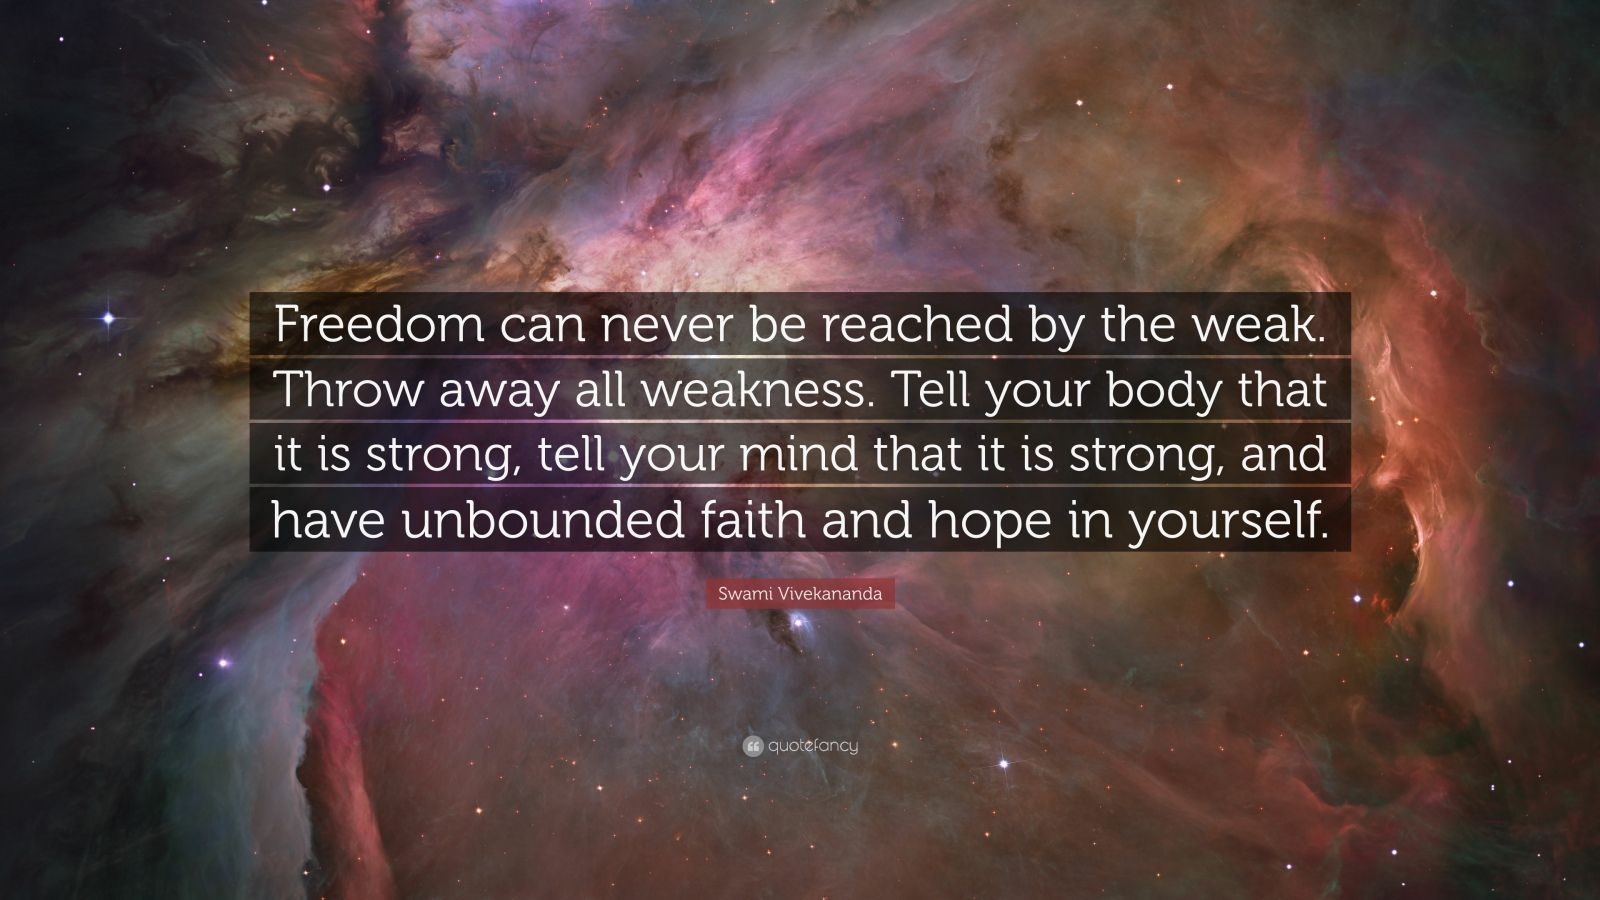 """Swami Vivekananda Quote: """"Freedom can never be reached by the weak. Throw away all weakness. Tell your body that it is strong, tell your mind that it is strong, and have unbounded faith and hope in yourself."""""""